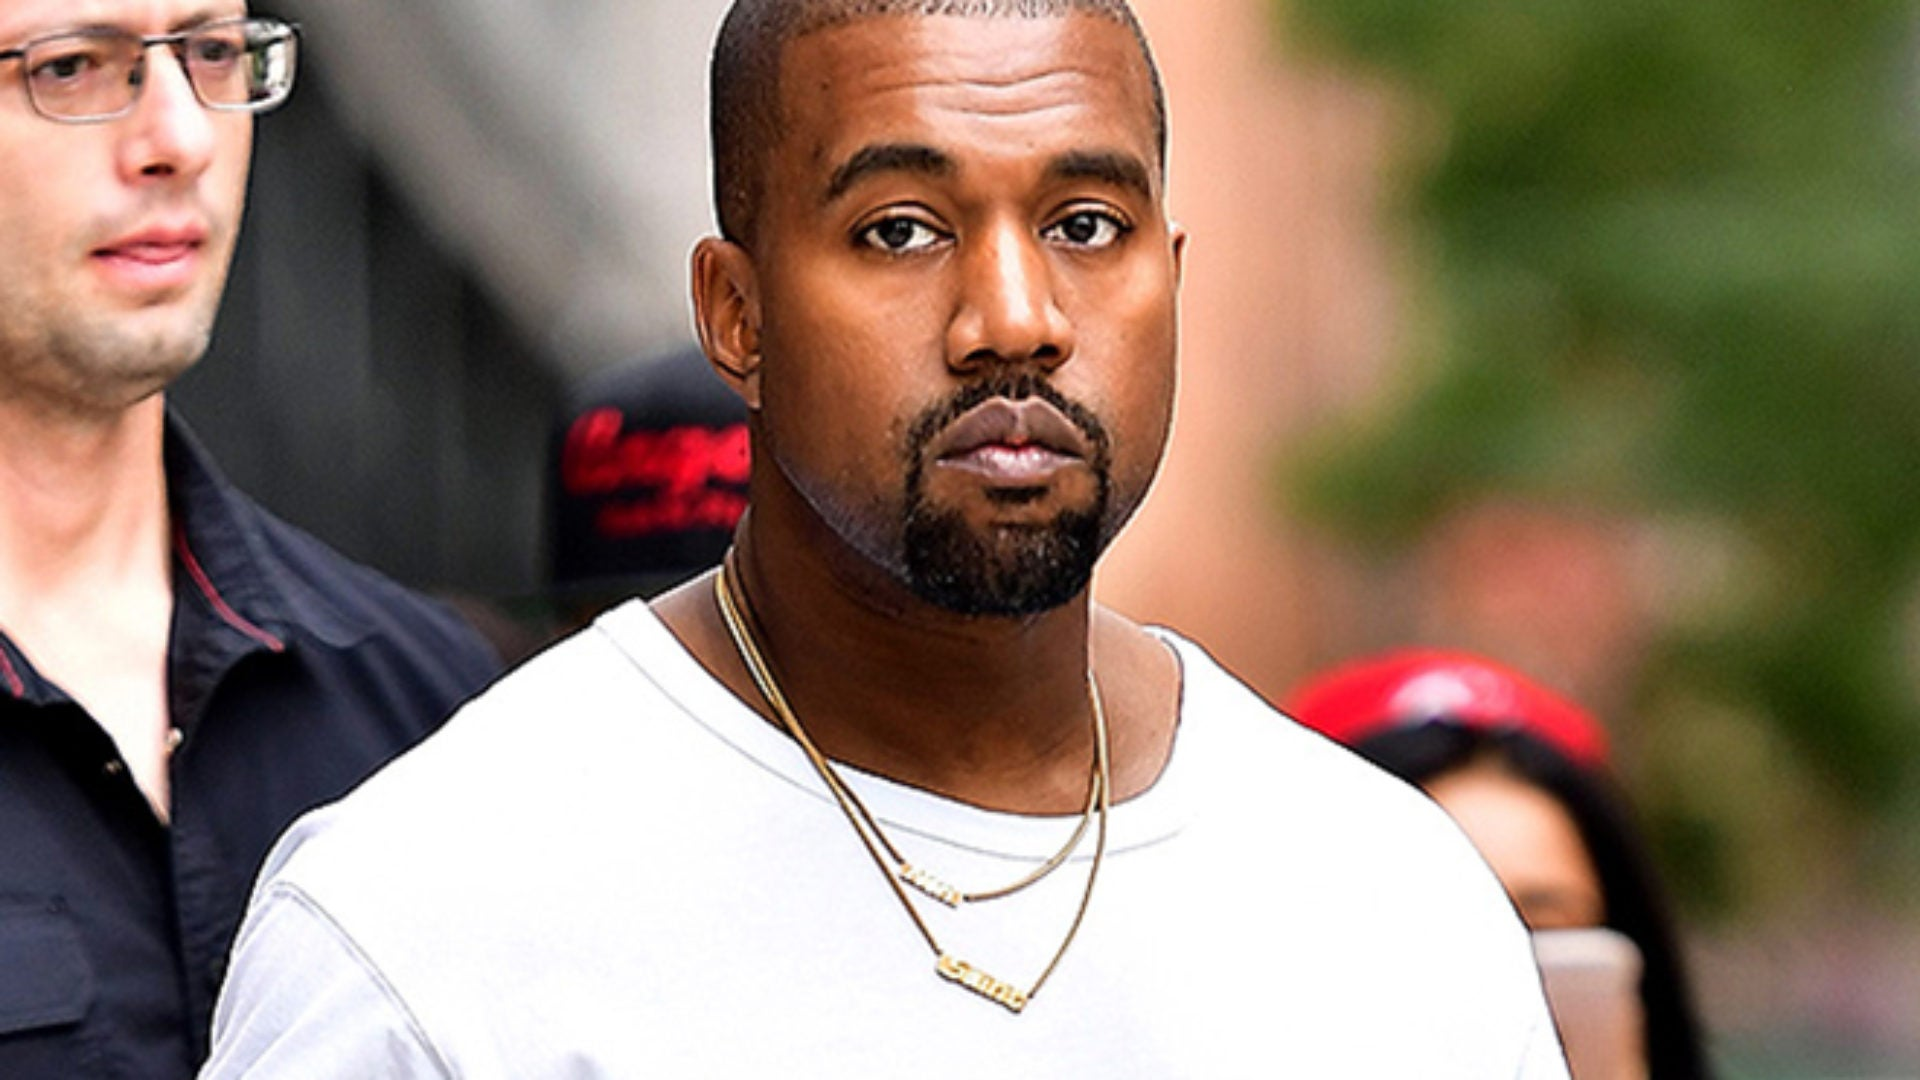 The Quick Read: Kanye West Says Being Bipolar Is His 'Superpower'